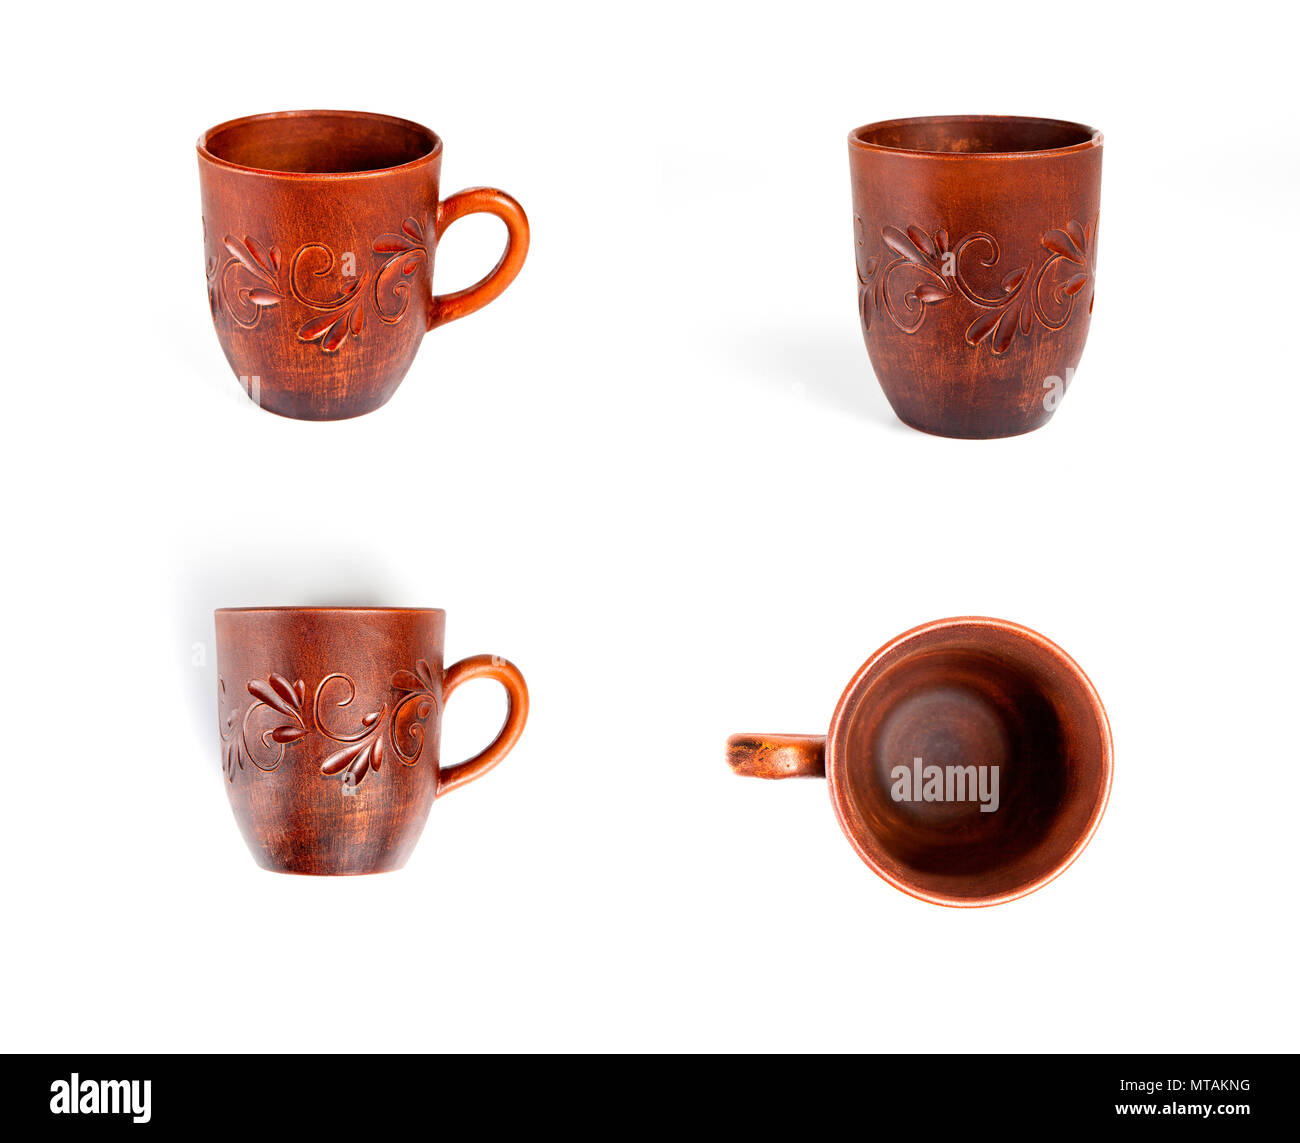 Different point of view of mug with floral pattern on white background - Stock Image